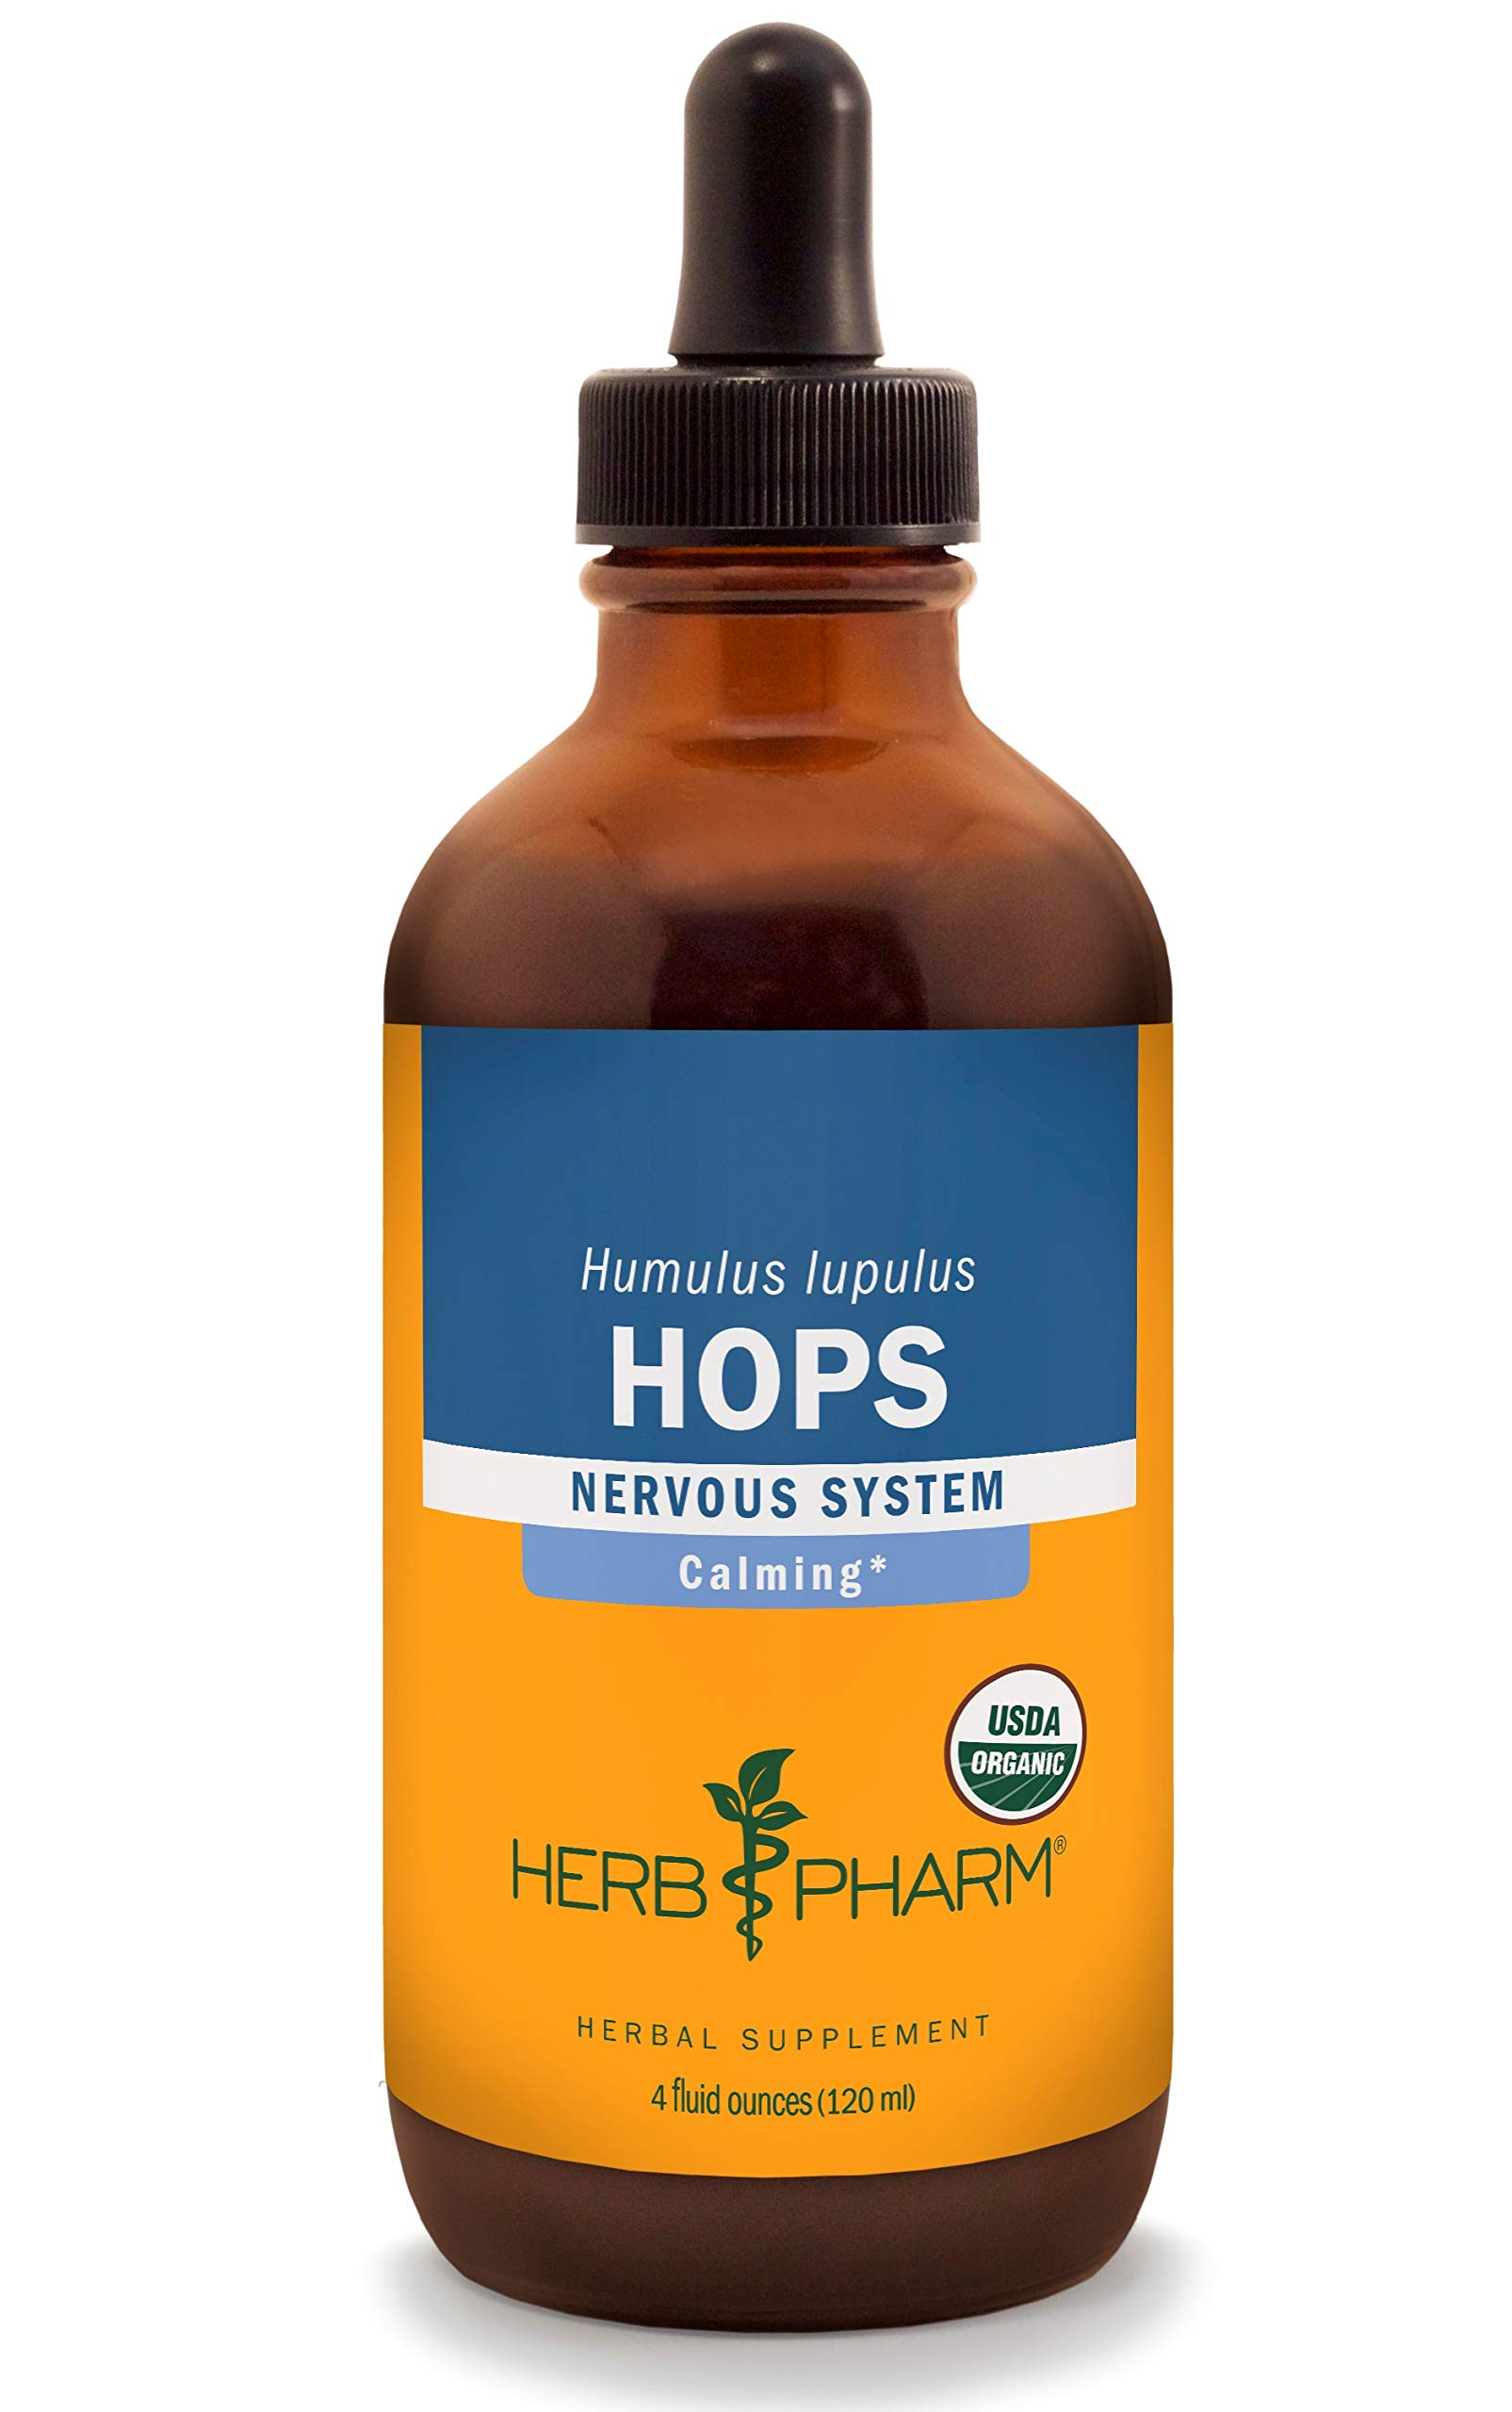 Herb Pharm Certified Organic Hops Liquid Extract for Calming Nervous System Support - 4 Ounce